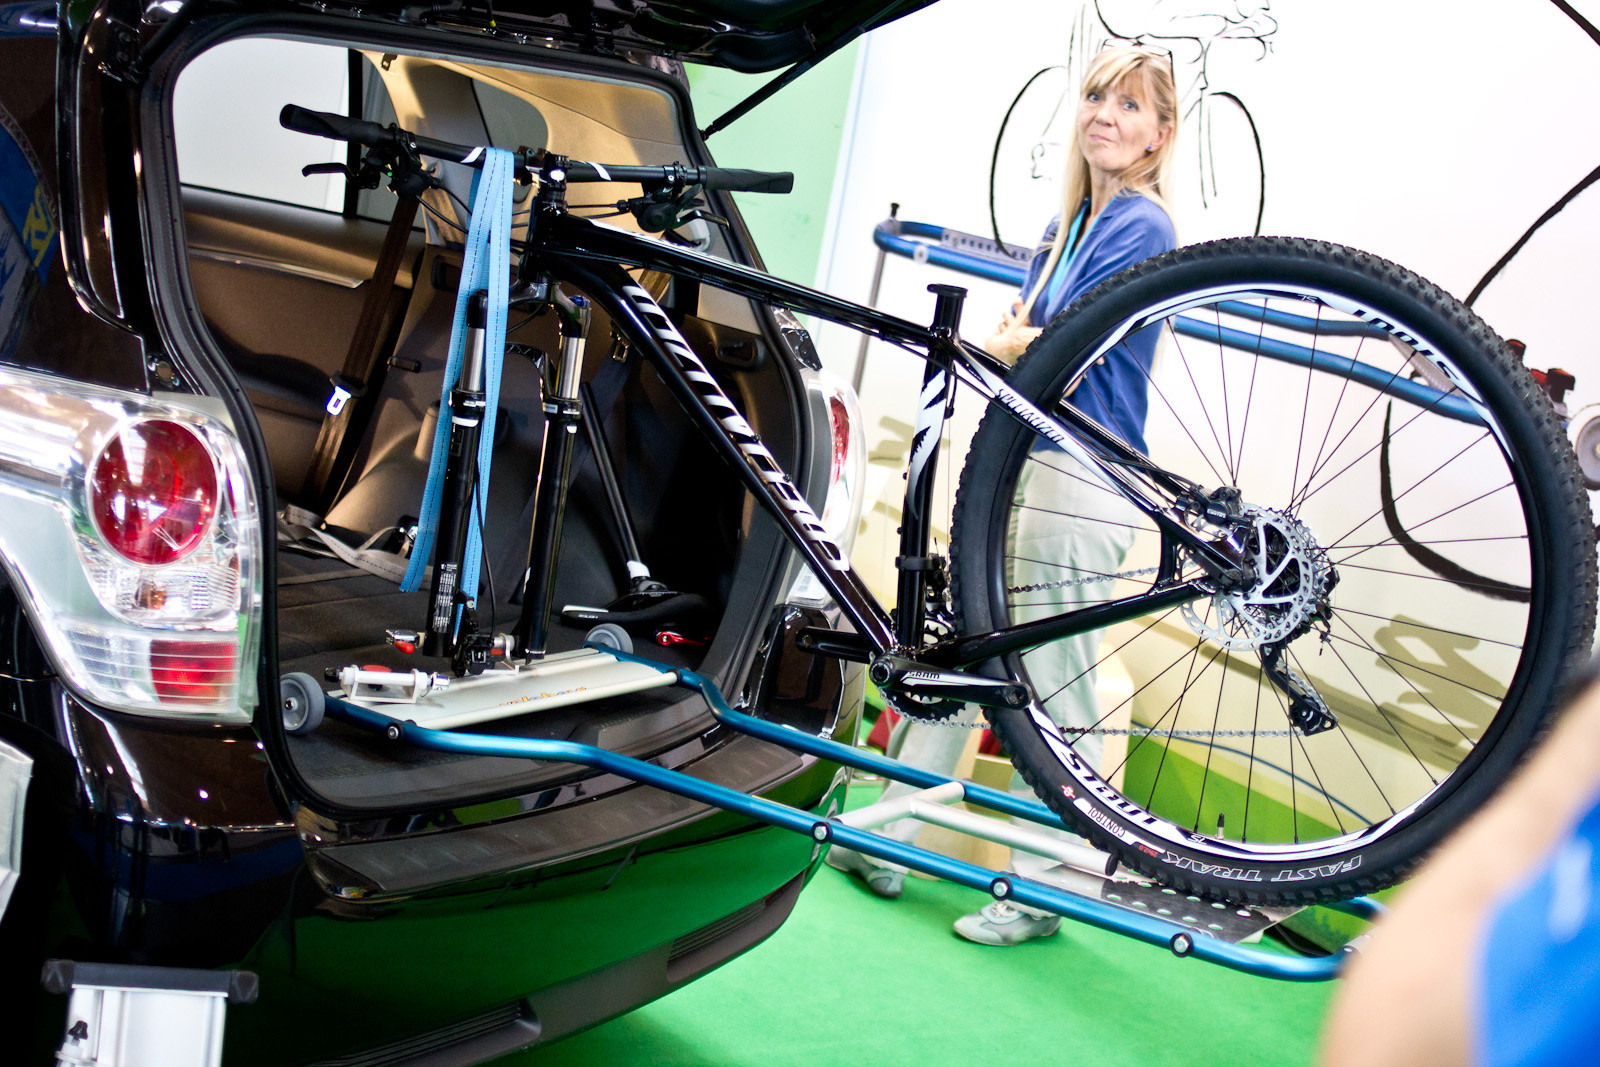 Trunk Dolly - Randoms at Eurobike 2013 - Mountain Biking Pictures - Vital MTB